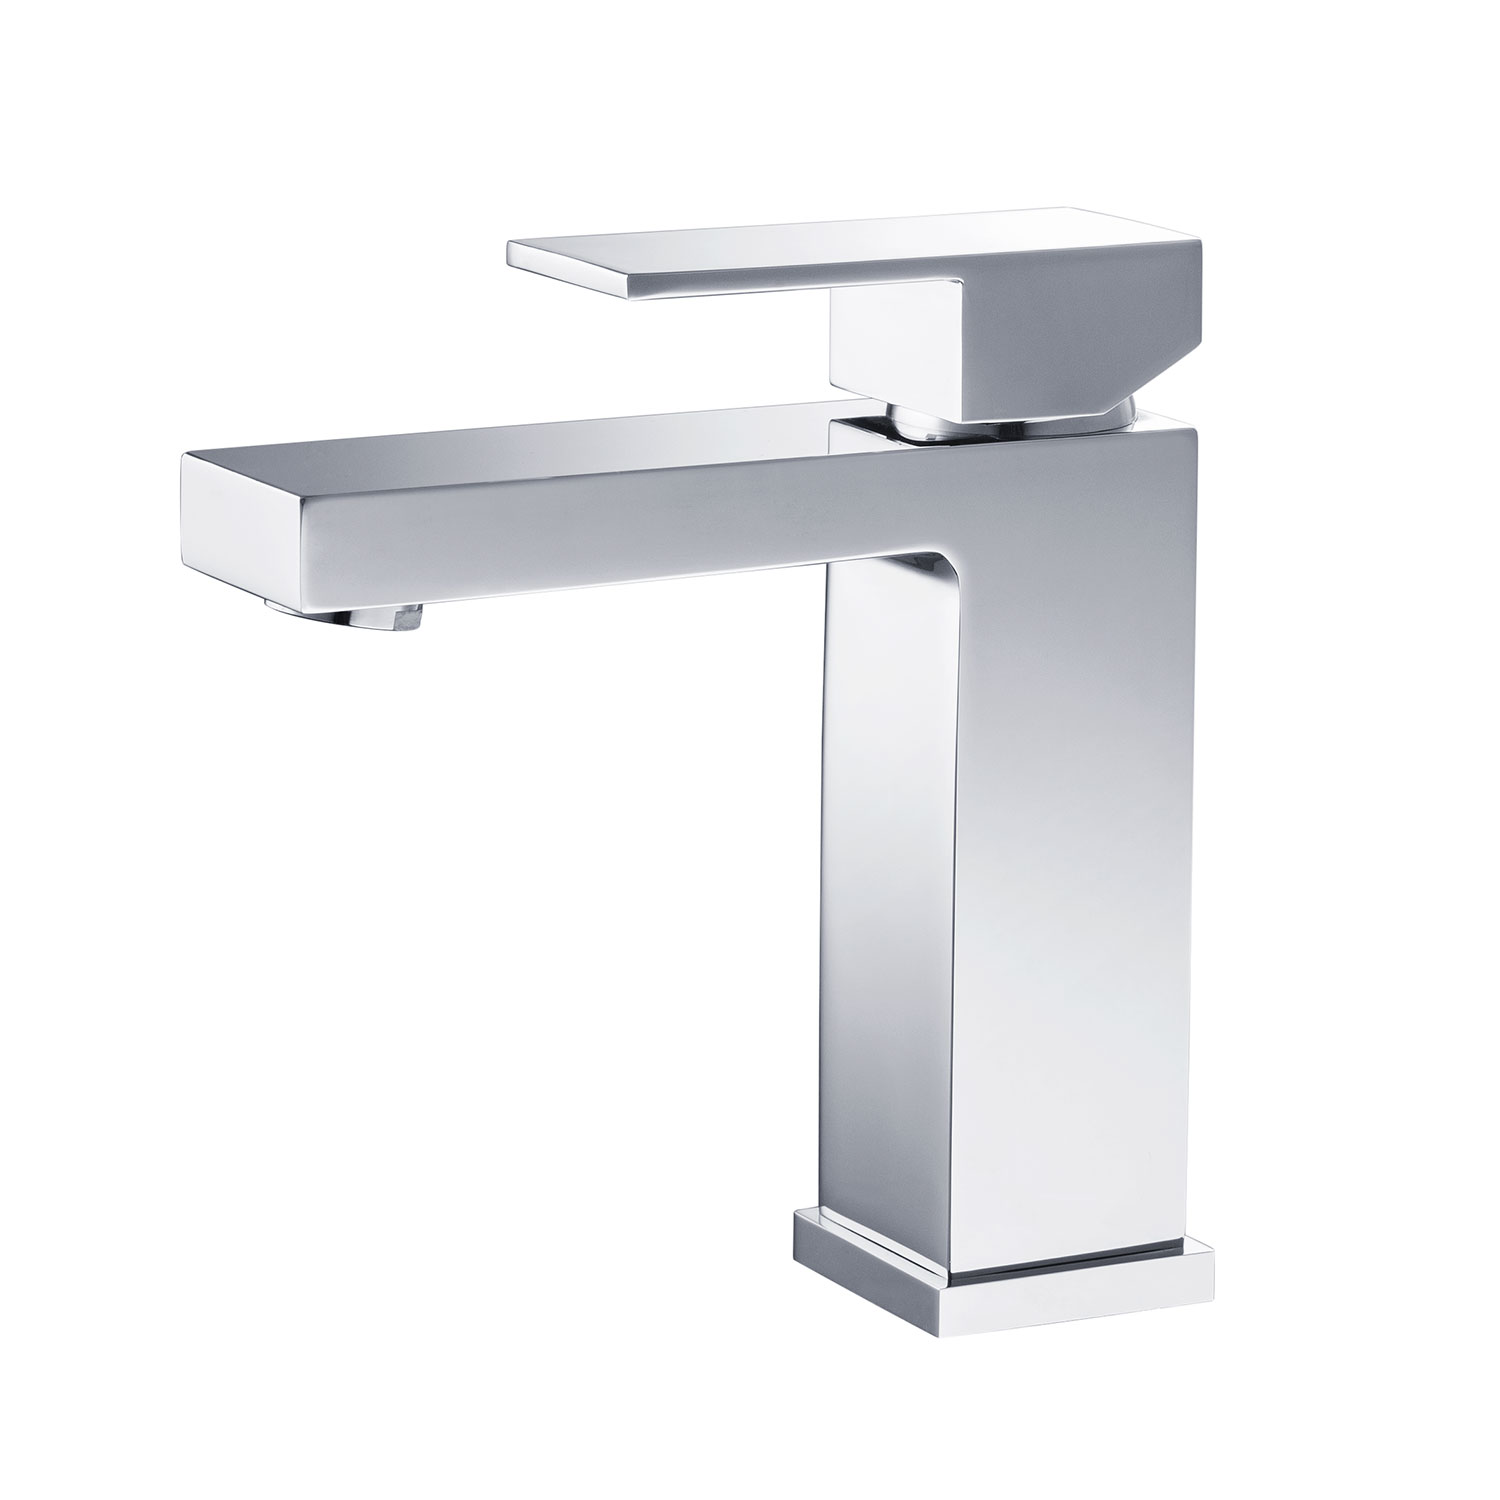 complete voss ideas brushed moen review this handle bathroom fromvoss faucets hole single faucet faucetin is in lever example higharc chrome